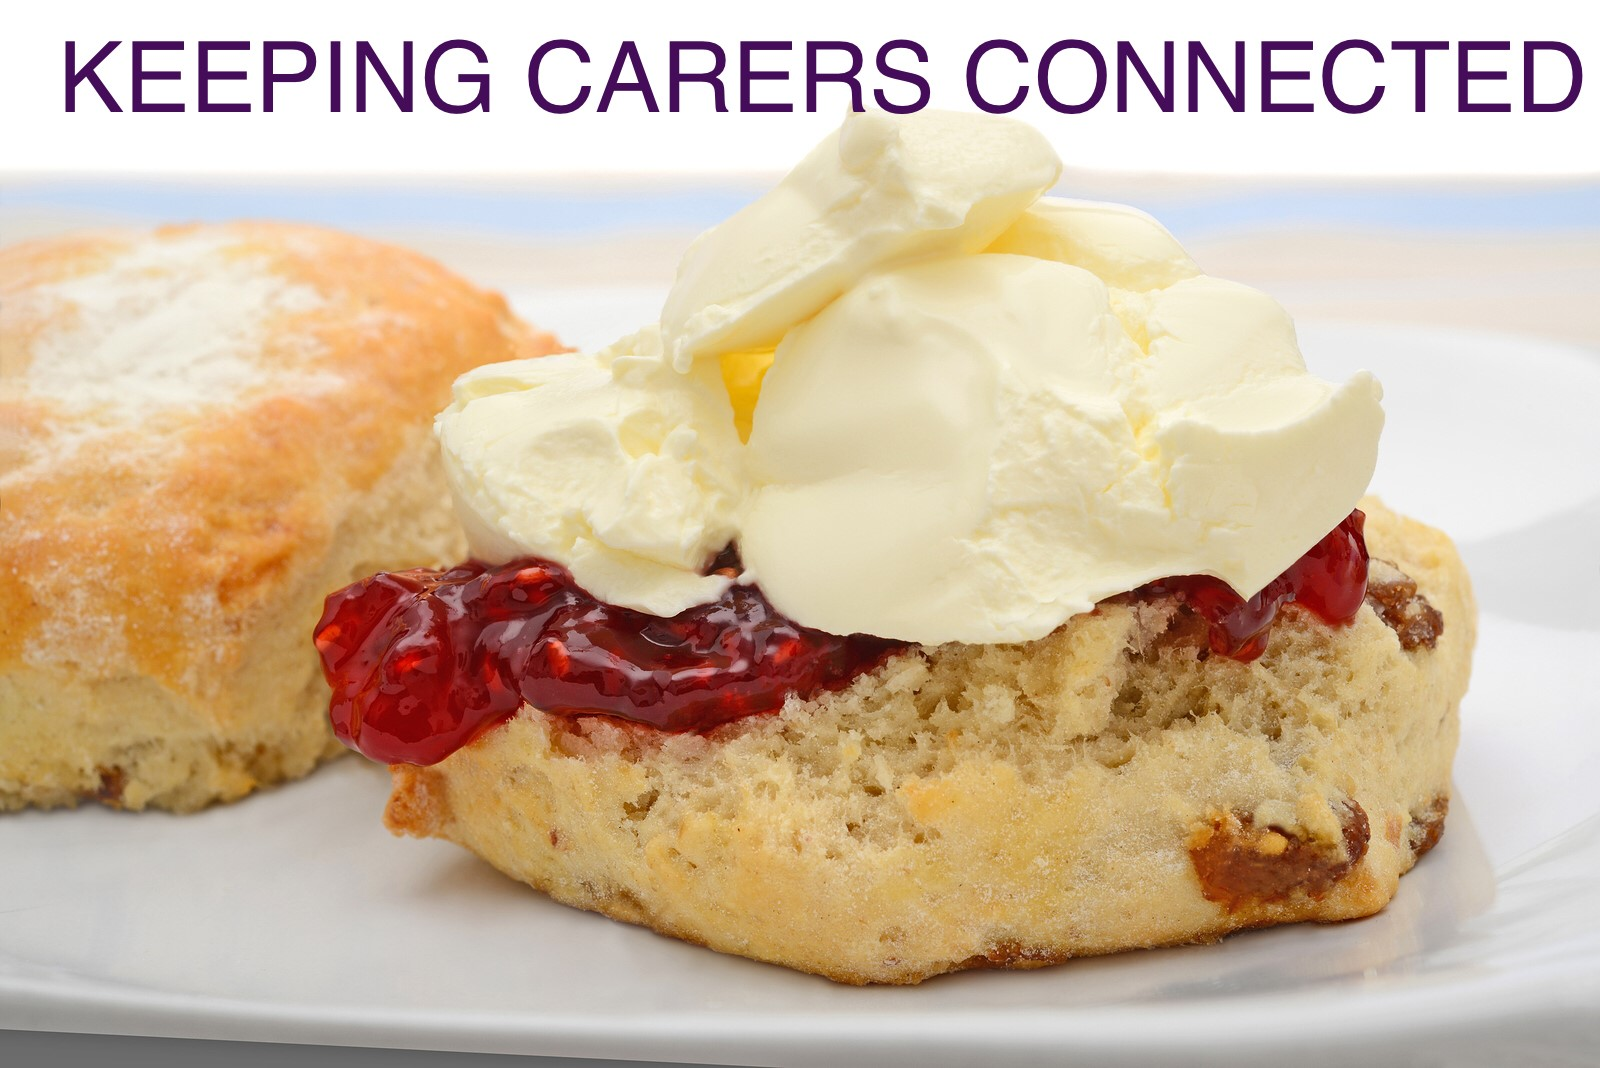 CARERS WEEK 2019 - come meet us in Hinckley on 4th June and enjoy a free cream tea. Ring us to reserve your place.